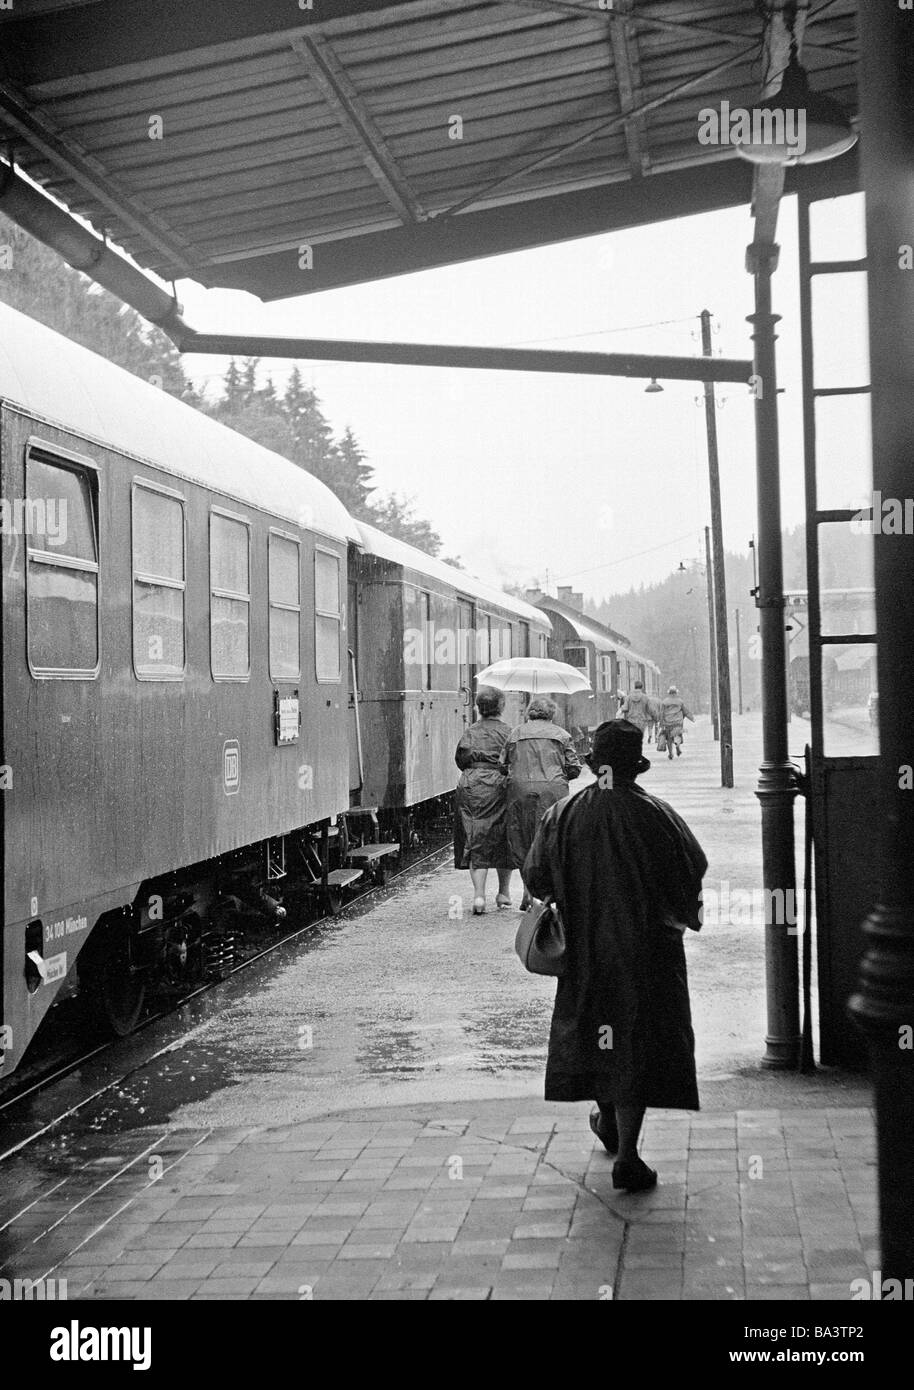 Sixties, black and white photo, people, senior, older woman walks on a platform to the waiting train, station, coat, - Stock Image